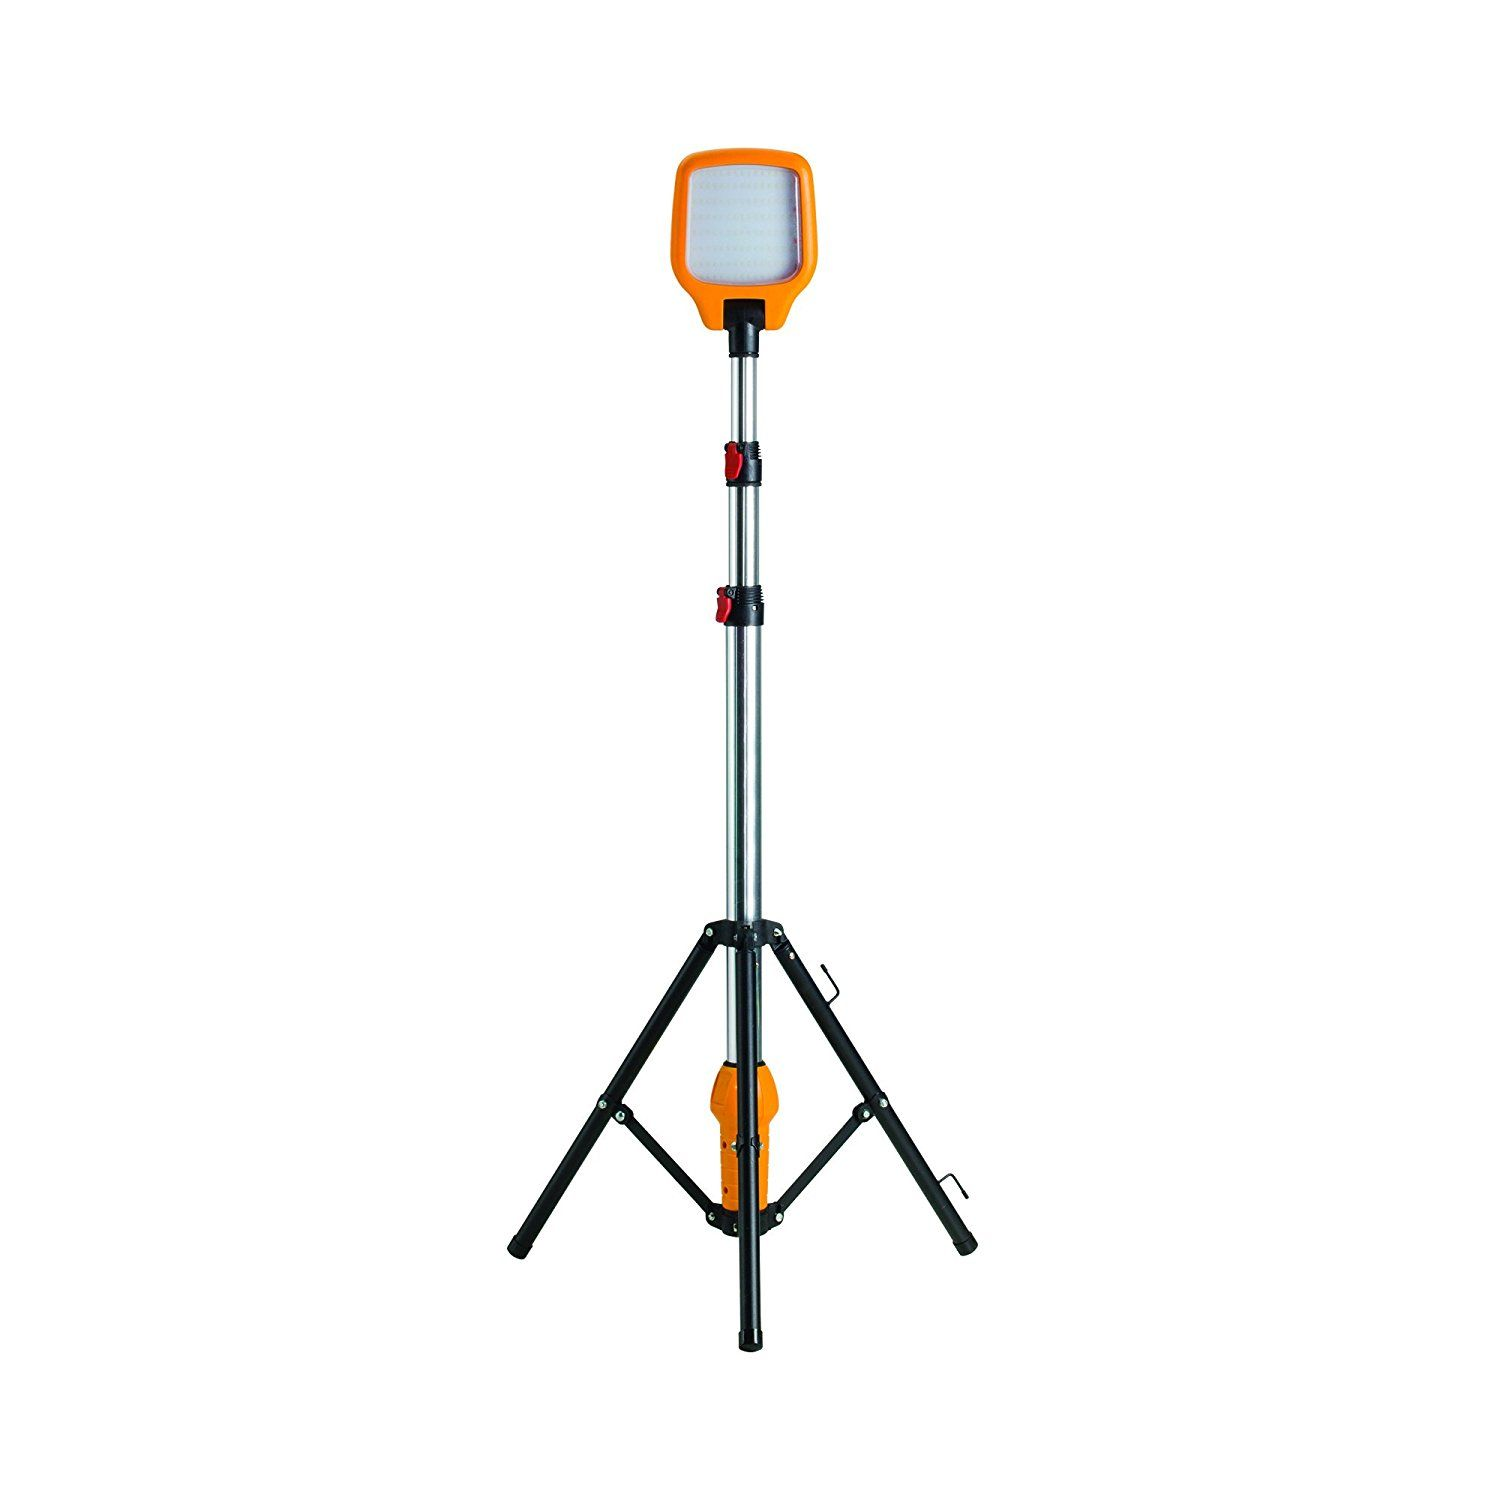 Defender E712679 110 V Led Task Light With Telescopic Tripod Yellow Be Sure To Check Out This Helpful Article M Led Task Light Task Lighting Power Tools